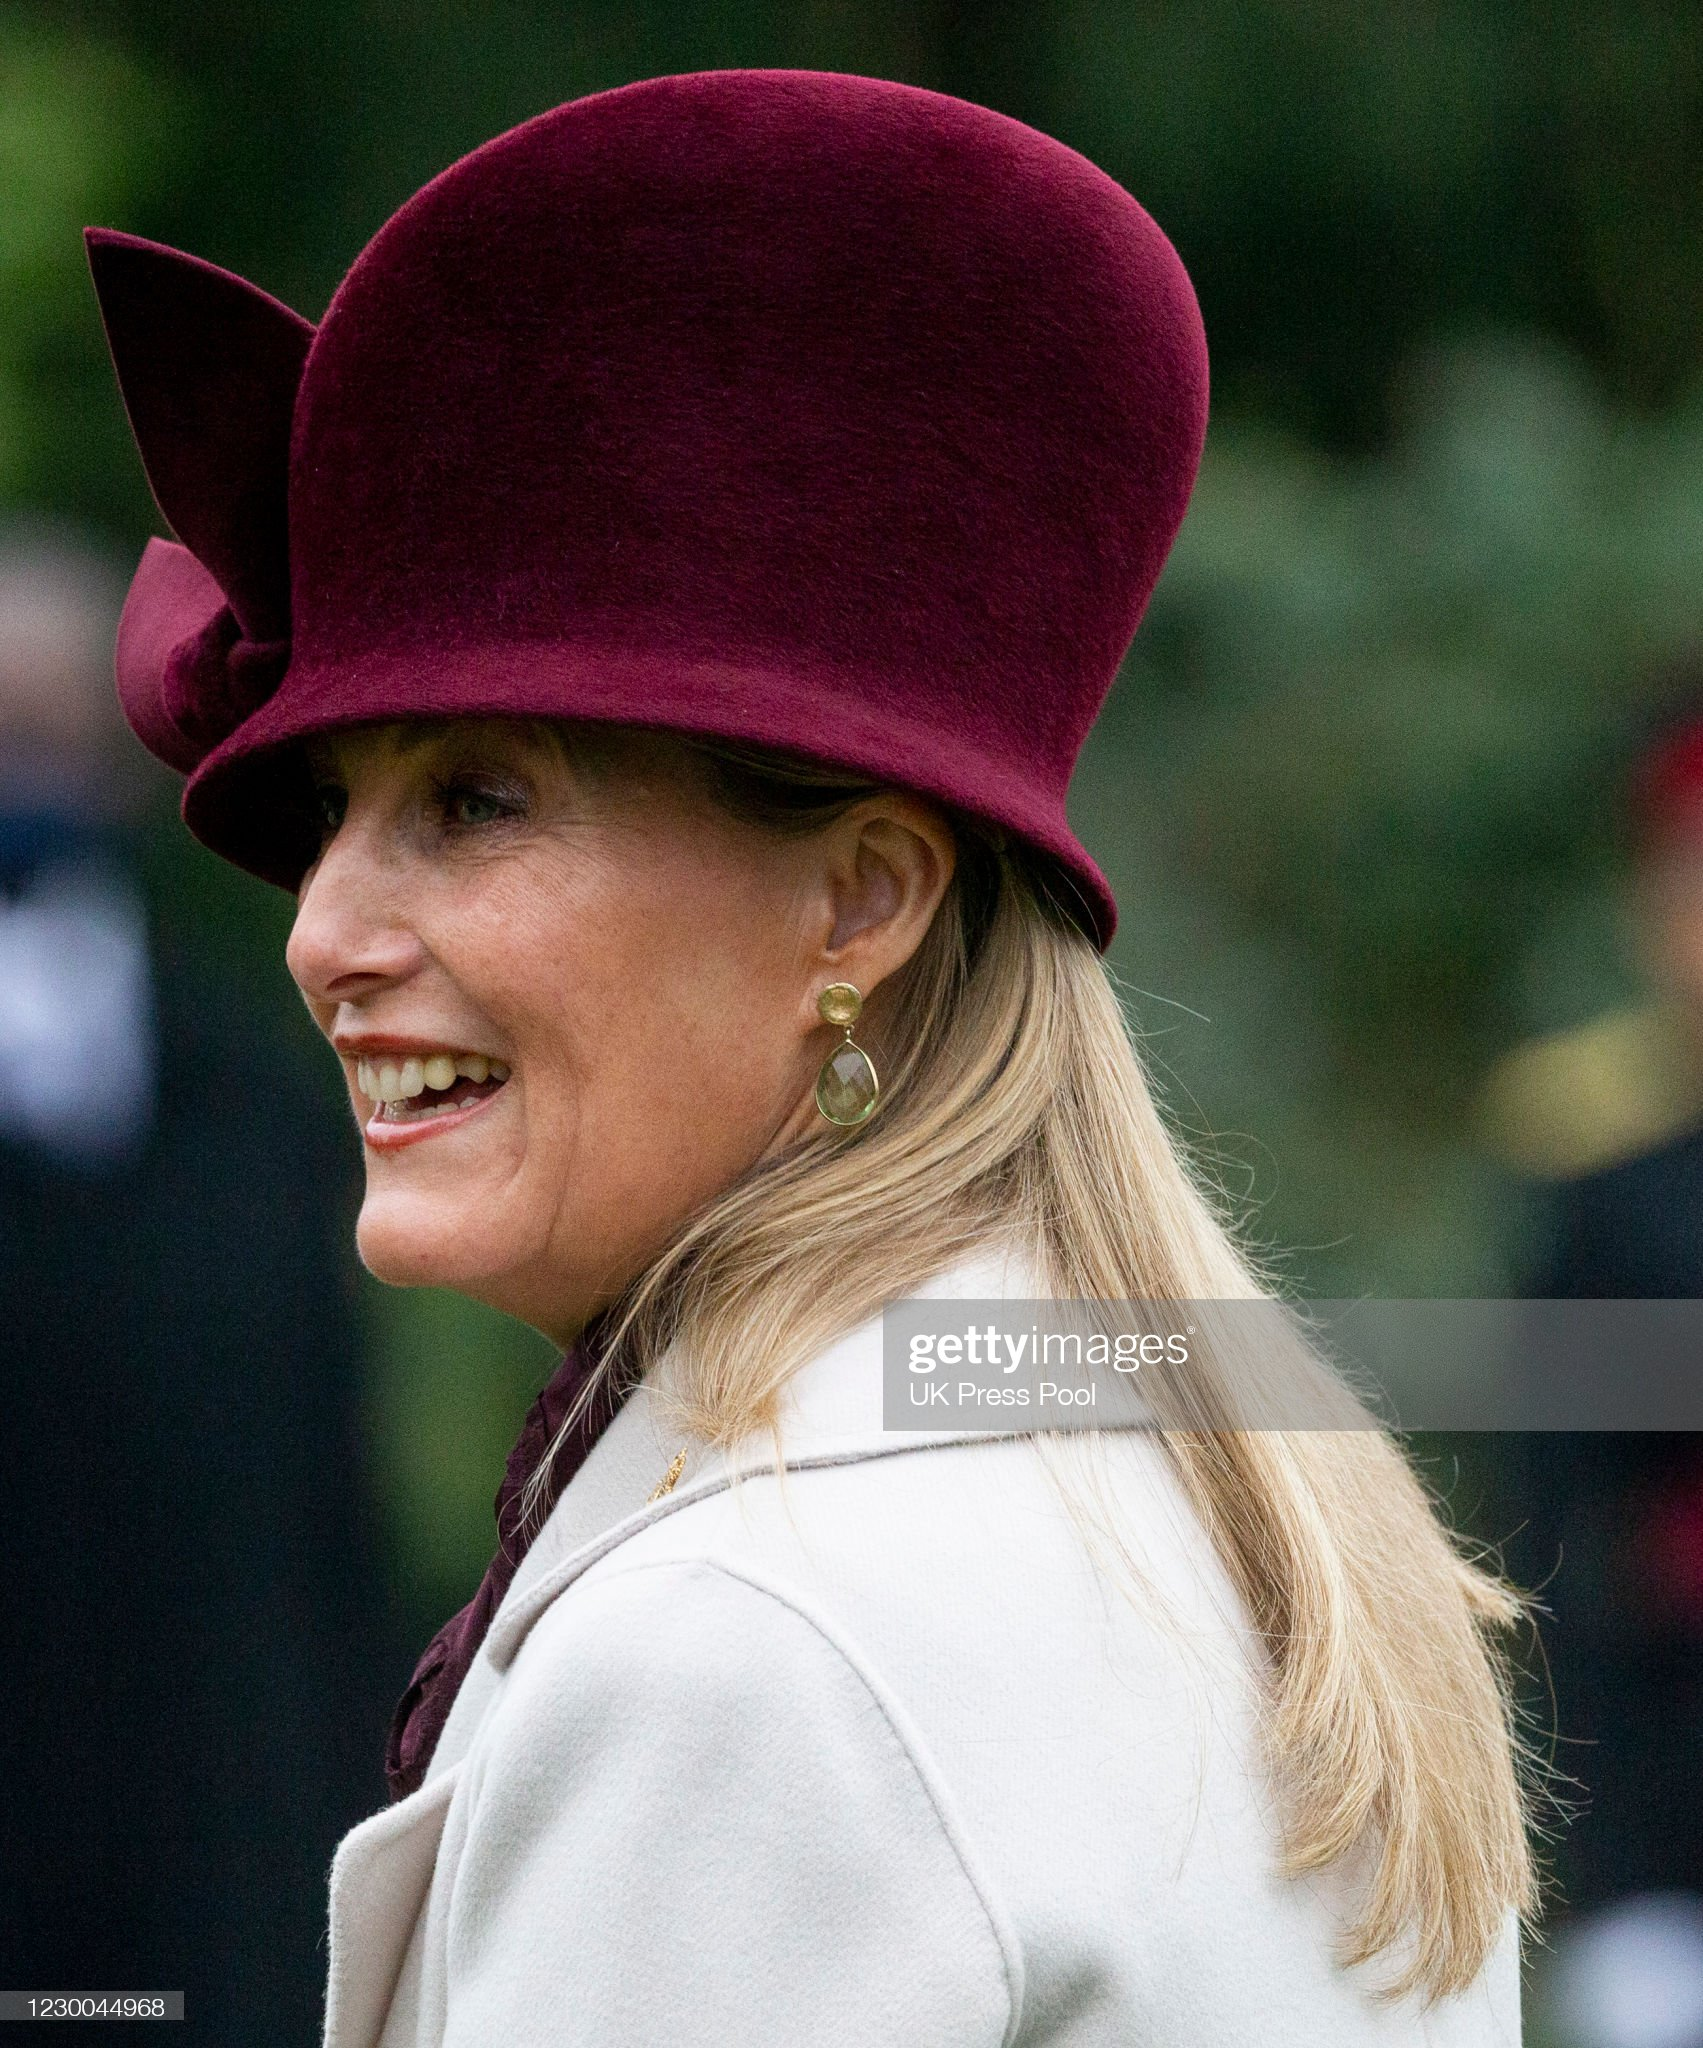 https://media.gettyimages.com/photos/sophie-countess-of-wessex-visits-the-corps-of-army-music-for-a-and-picture-id1230044968?s=2048x2048